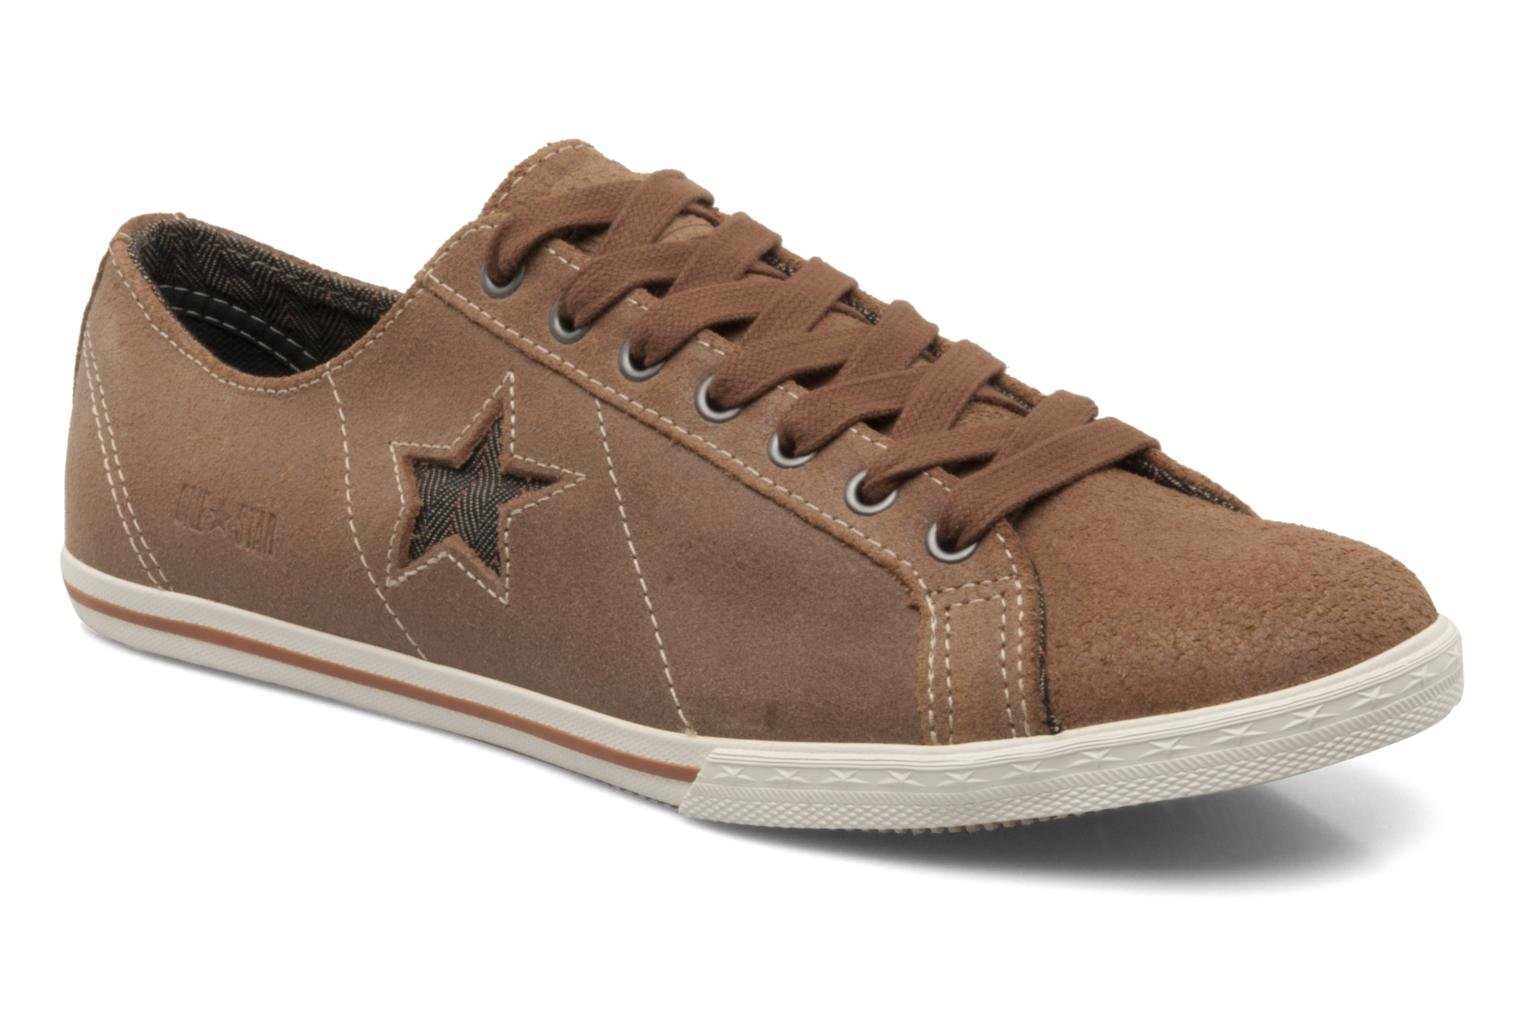 Converse One star low profile suede ox m (Brown) Trainers